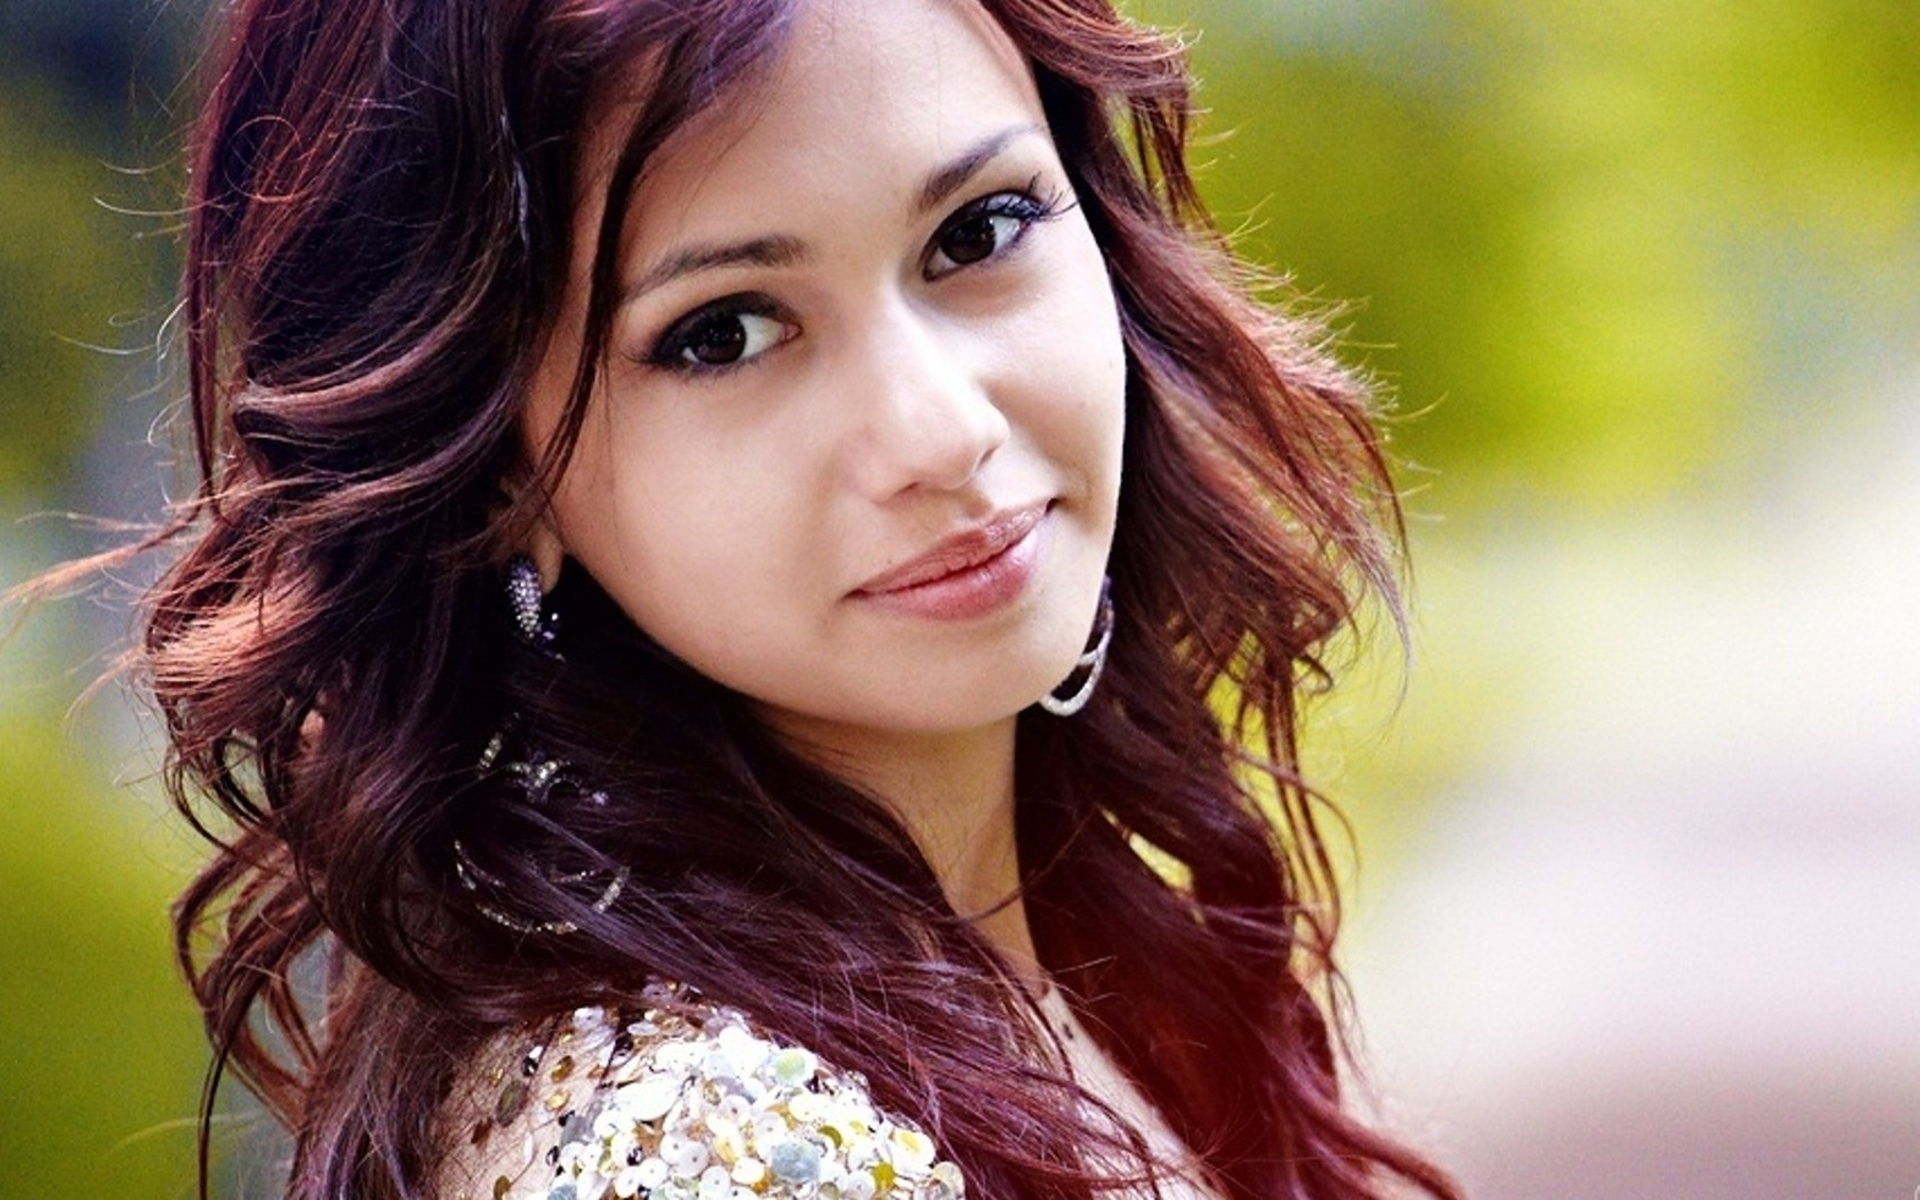 cute and beautiful girls hd wallpapers - all hd wallpapers